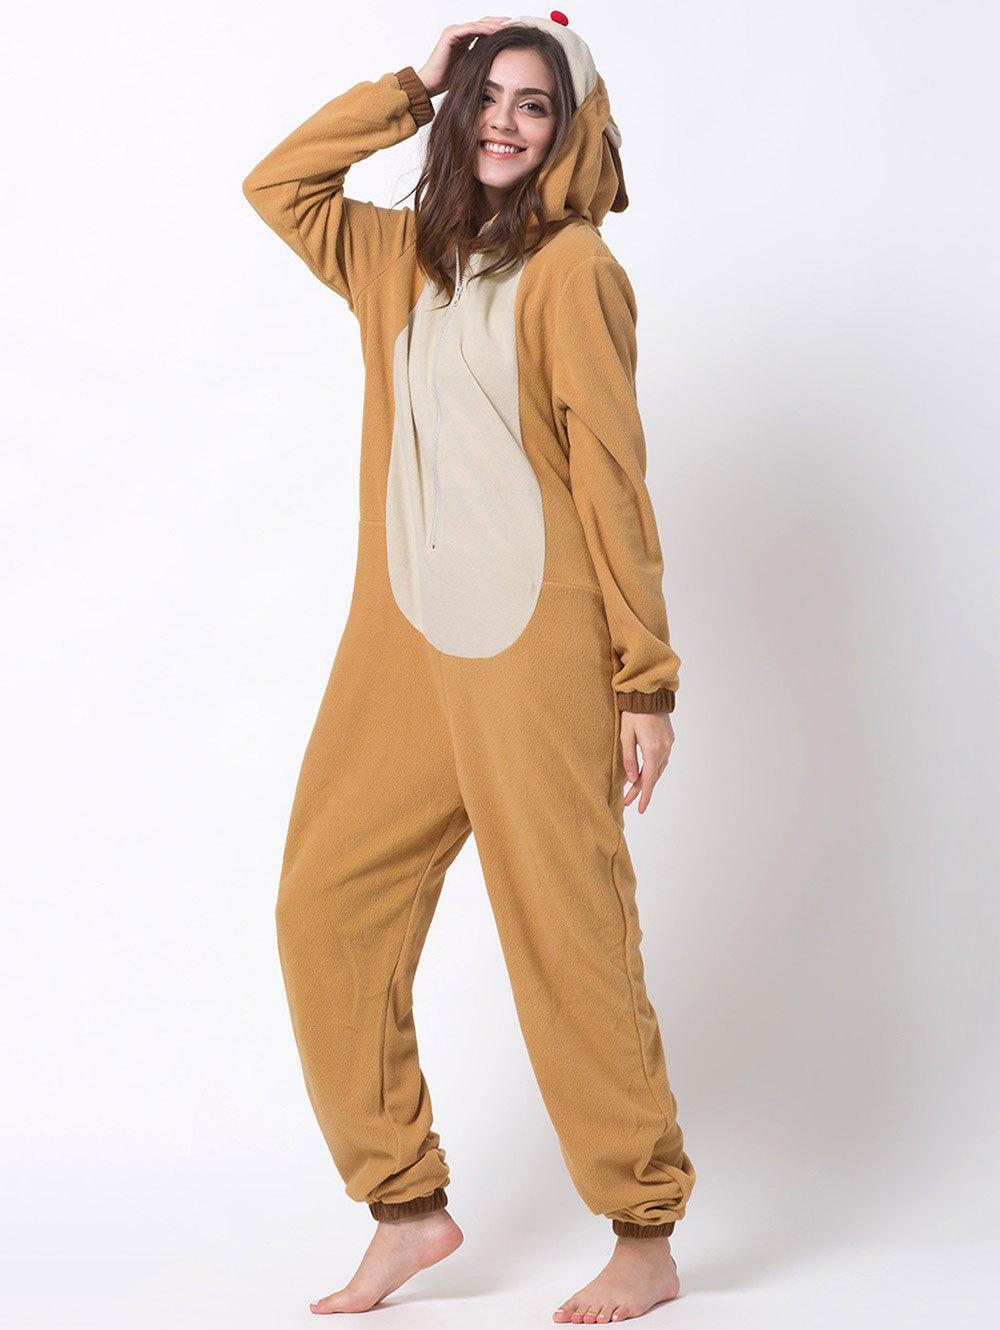 Hooded Cartoon Reindeer Animal Cosplay Pajamas - ORANGE M